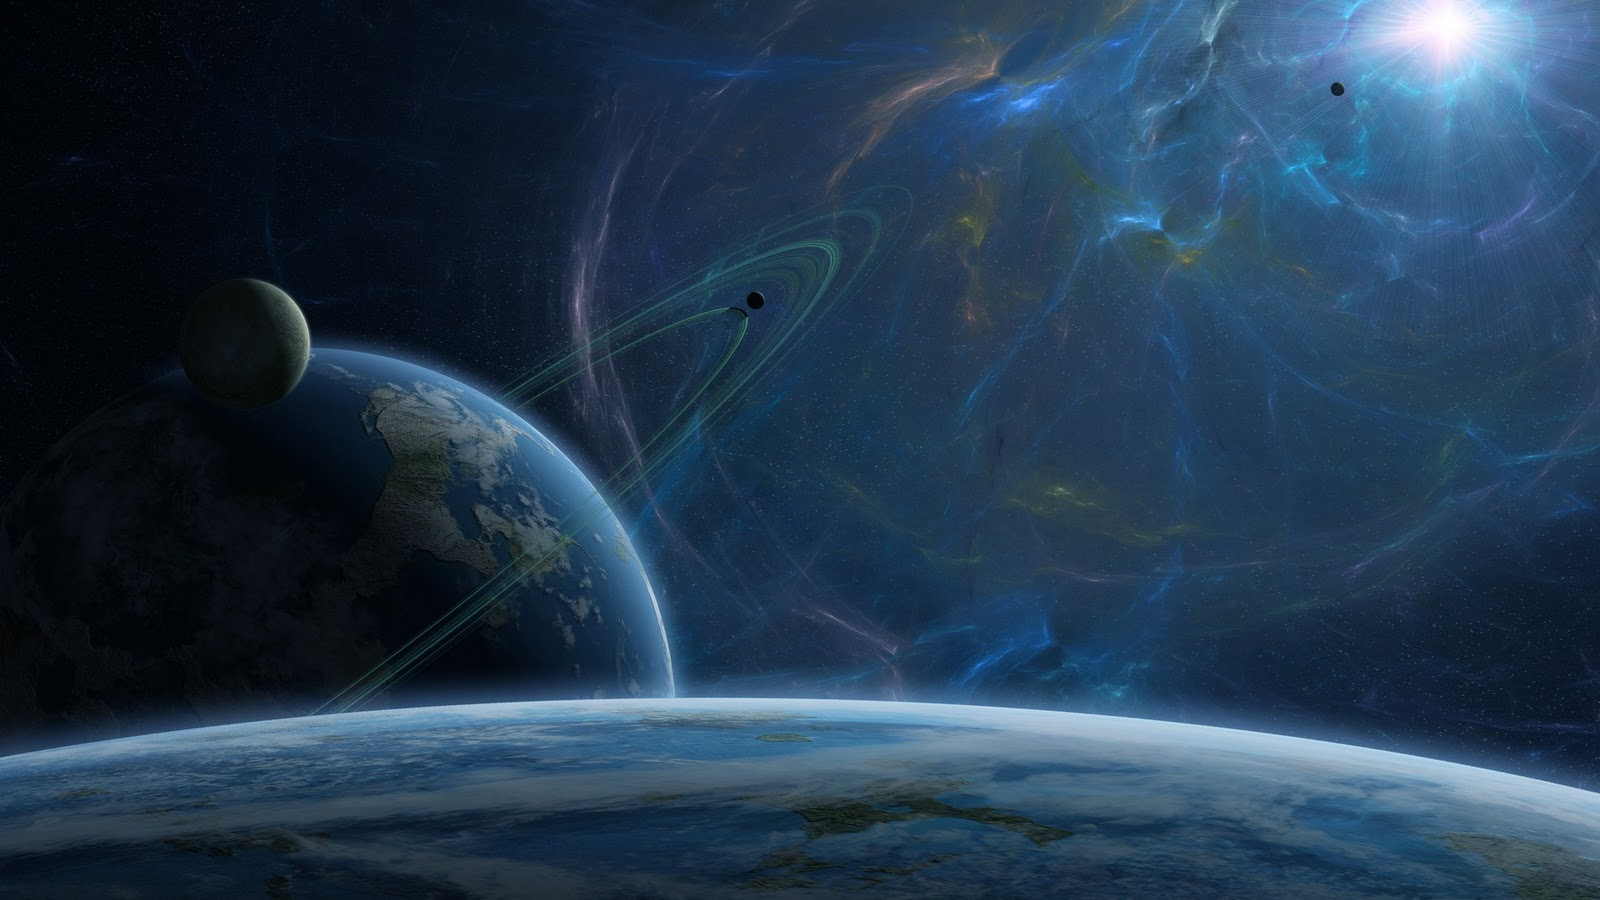 30 Hd Space Ipad Wallpapers: Space Wallpapers